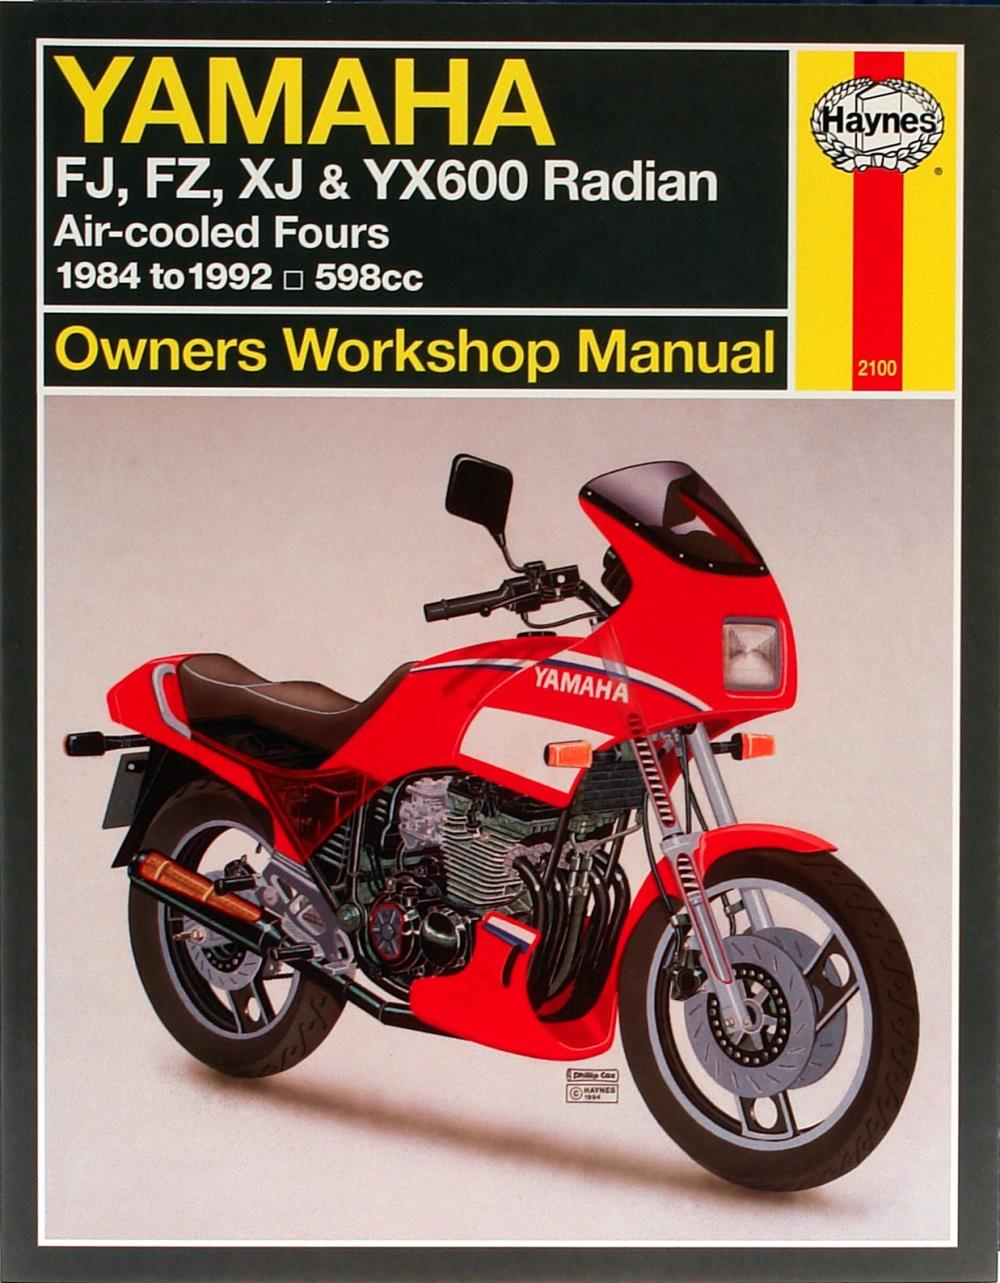 1987 Yamaha Radian Wiring Diagram Electrical Diagrams Xj 1986 Yx600 Car Explained U2022 Parts